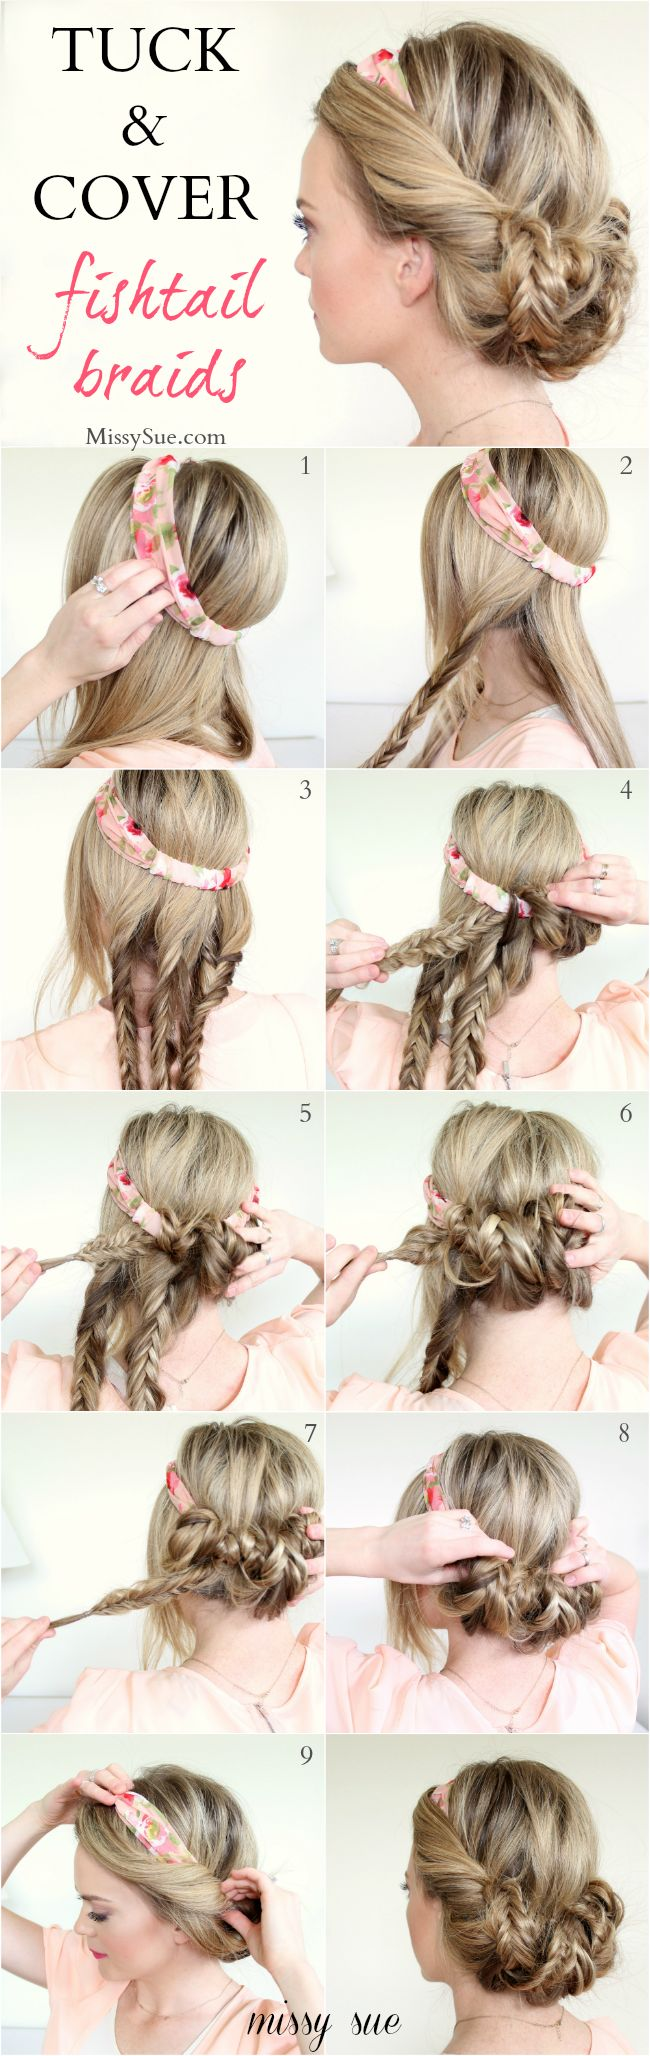 Tuck & Cover Fishtail Braids